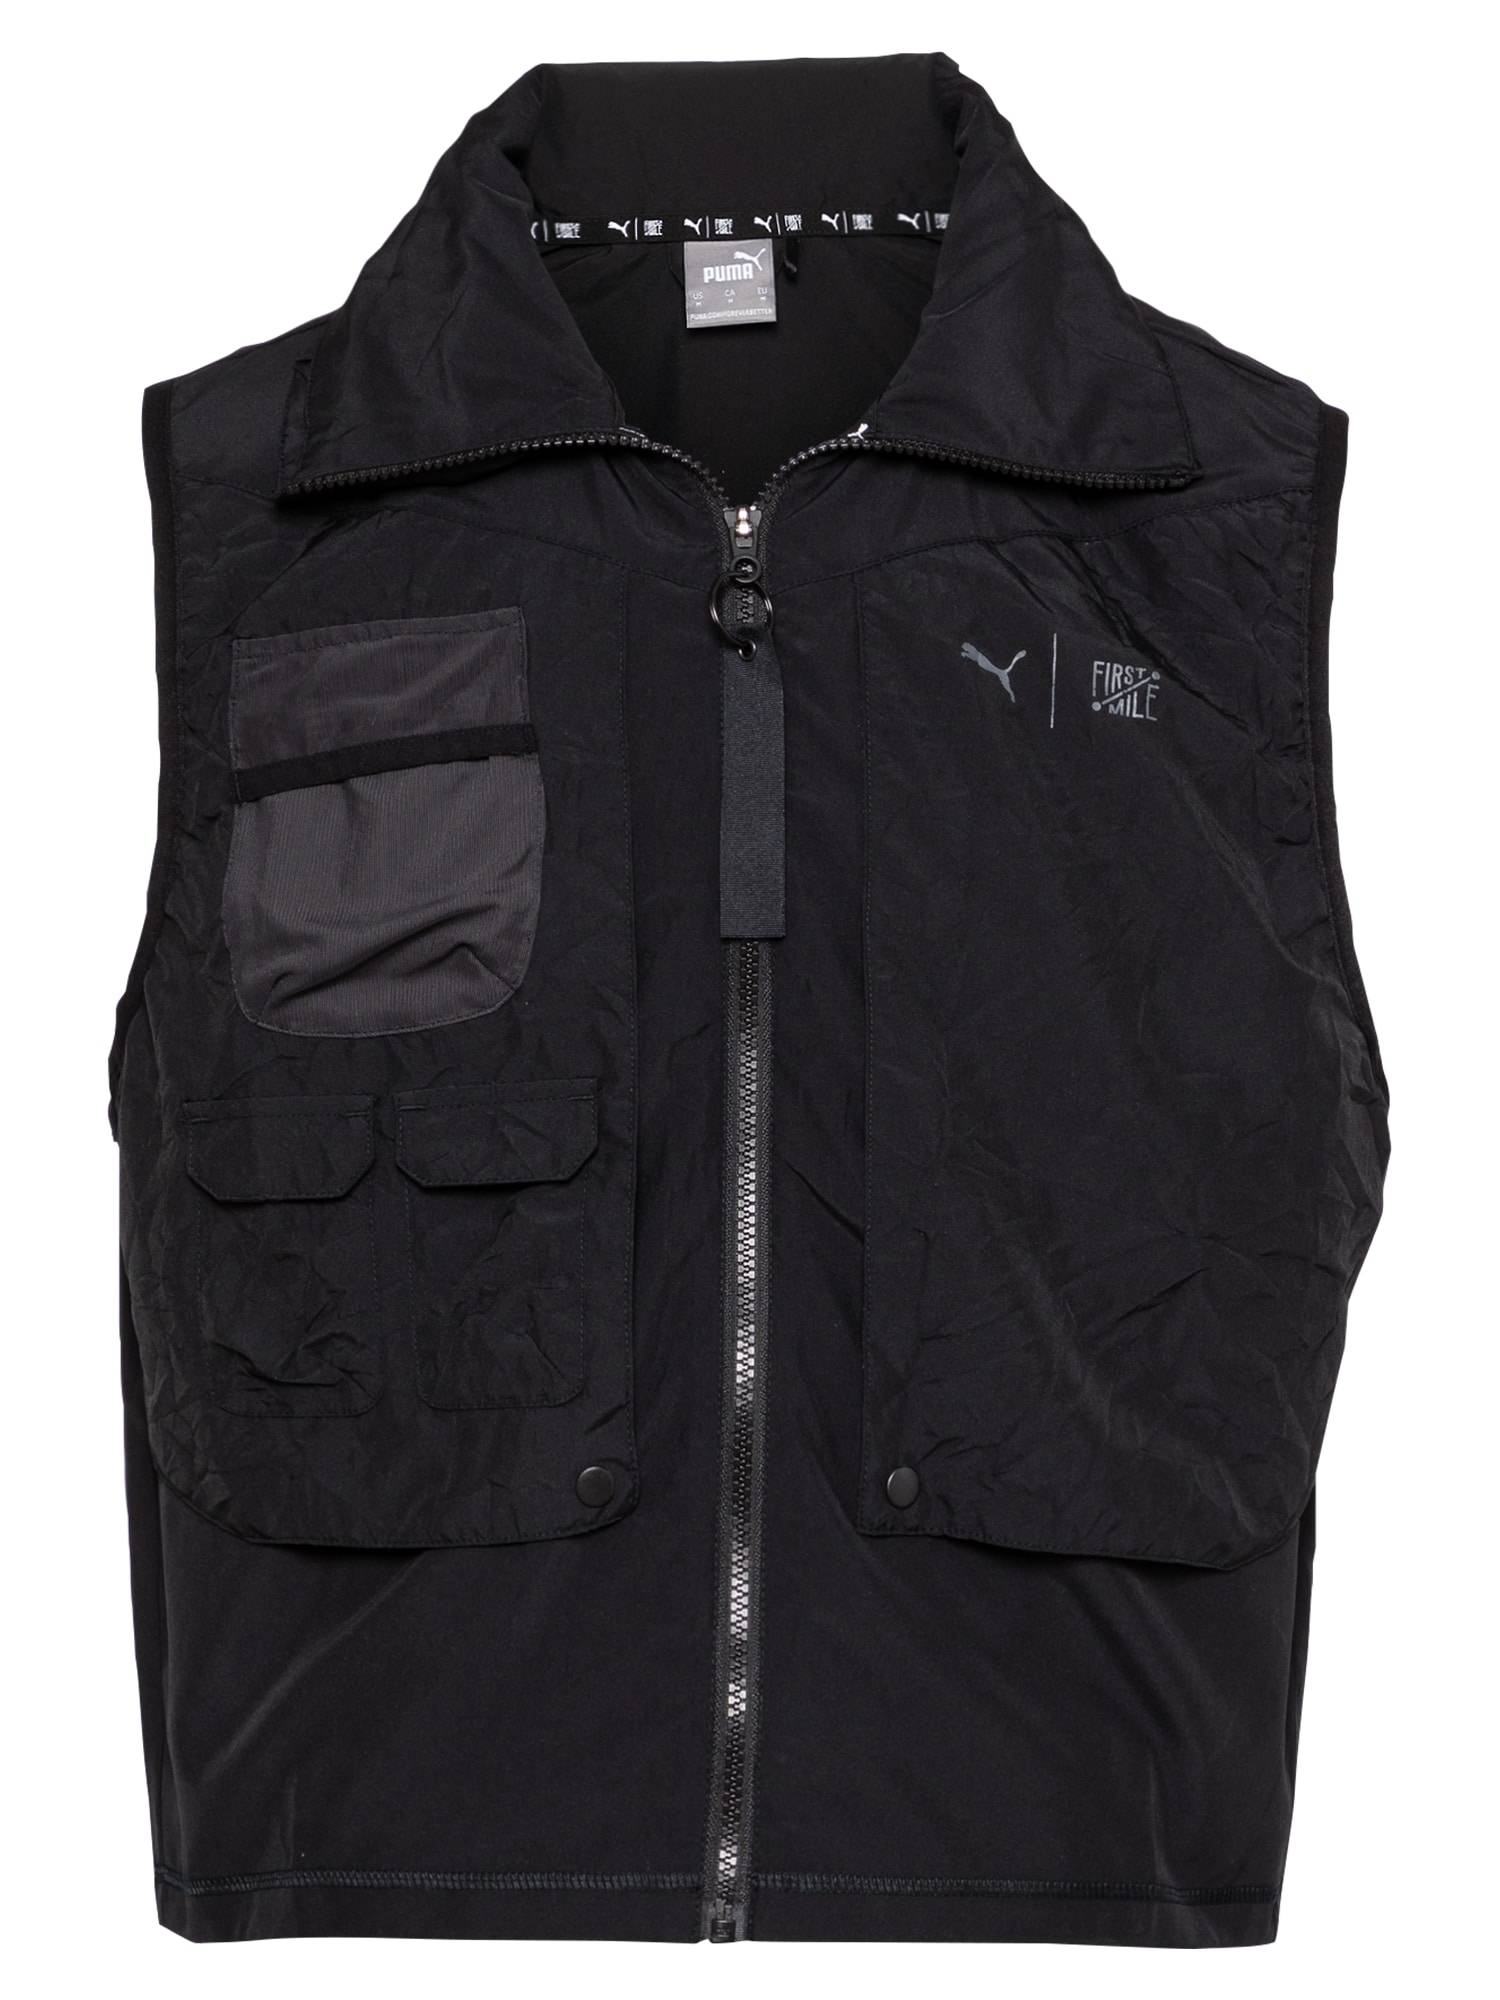 PUMA Gilet de sport 'TRAIN FIRST MILE UTILITY VEST'  - Noir - Taille: M - male